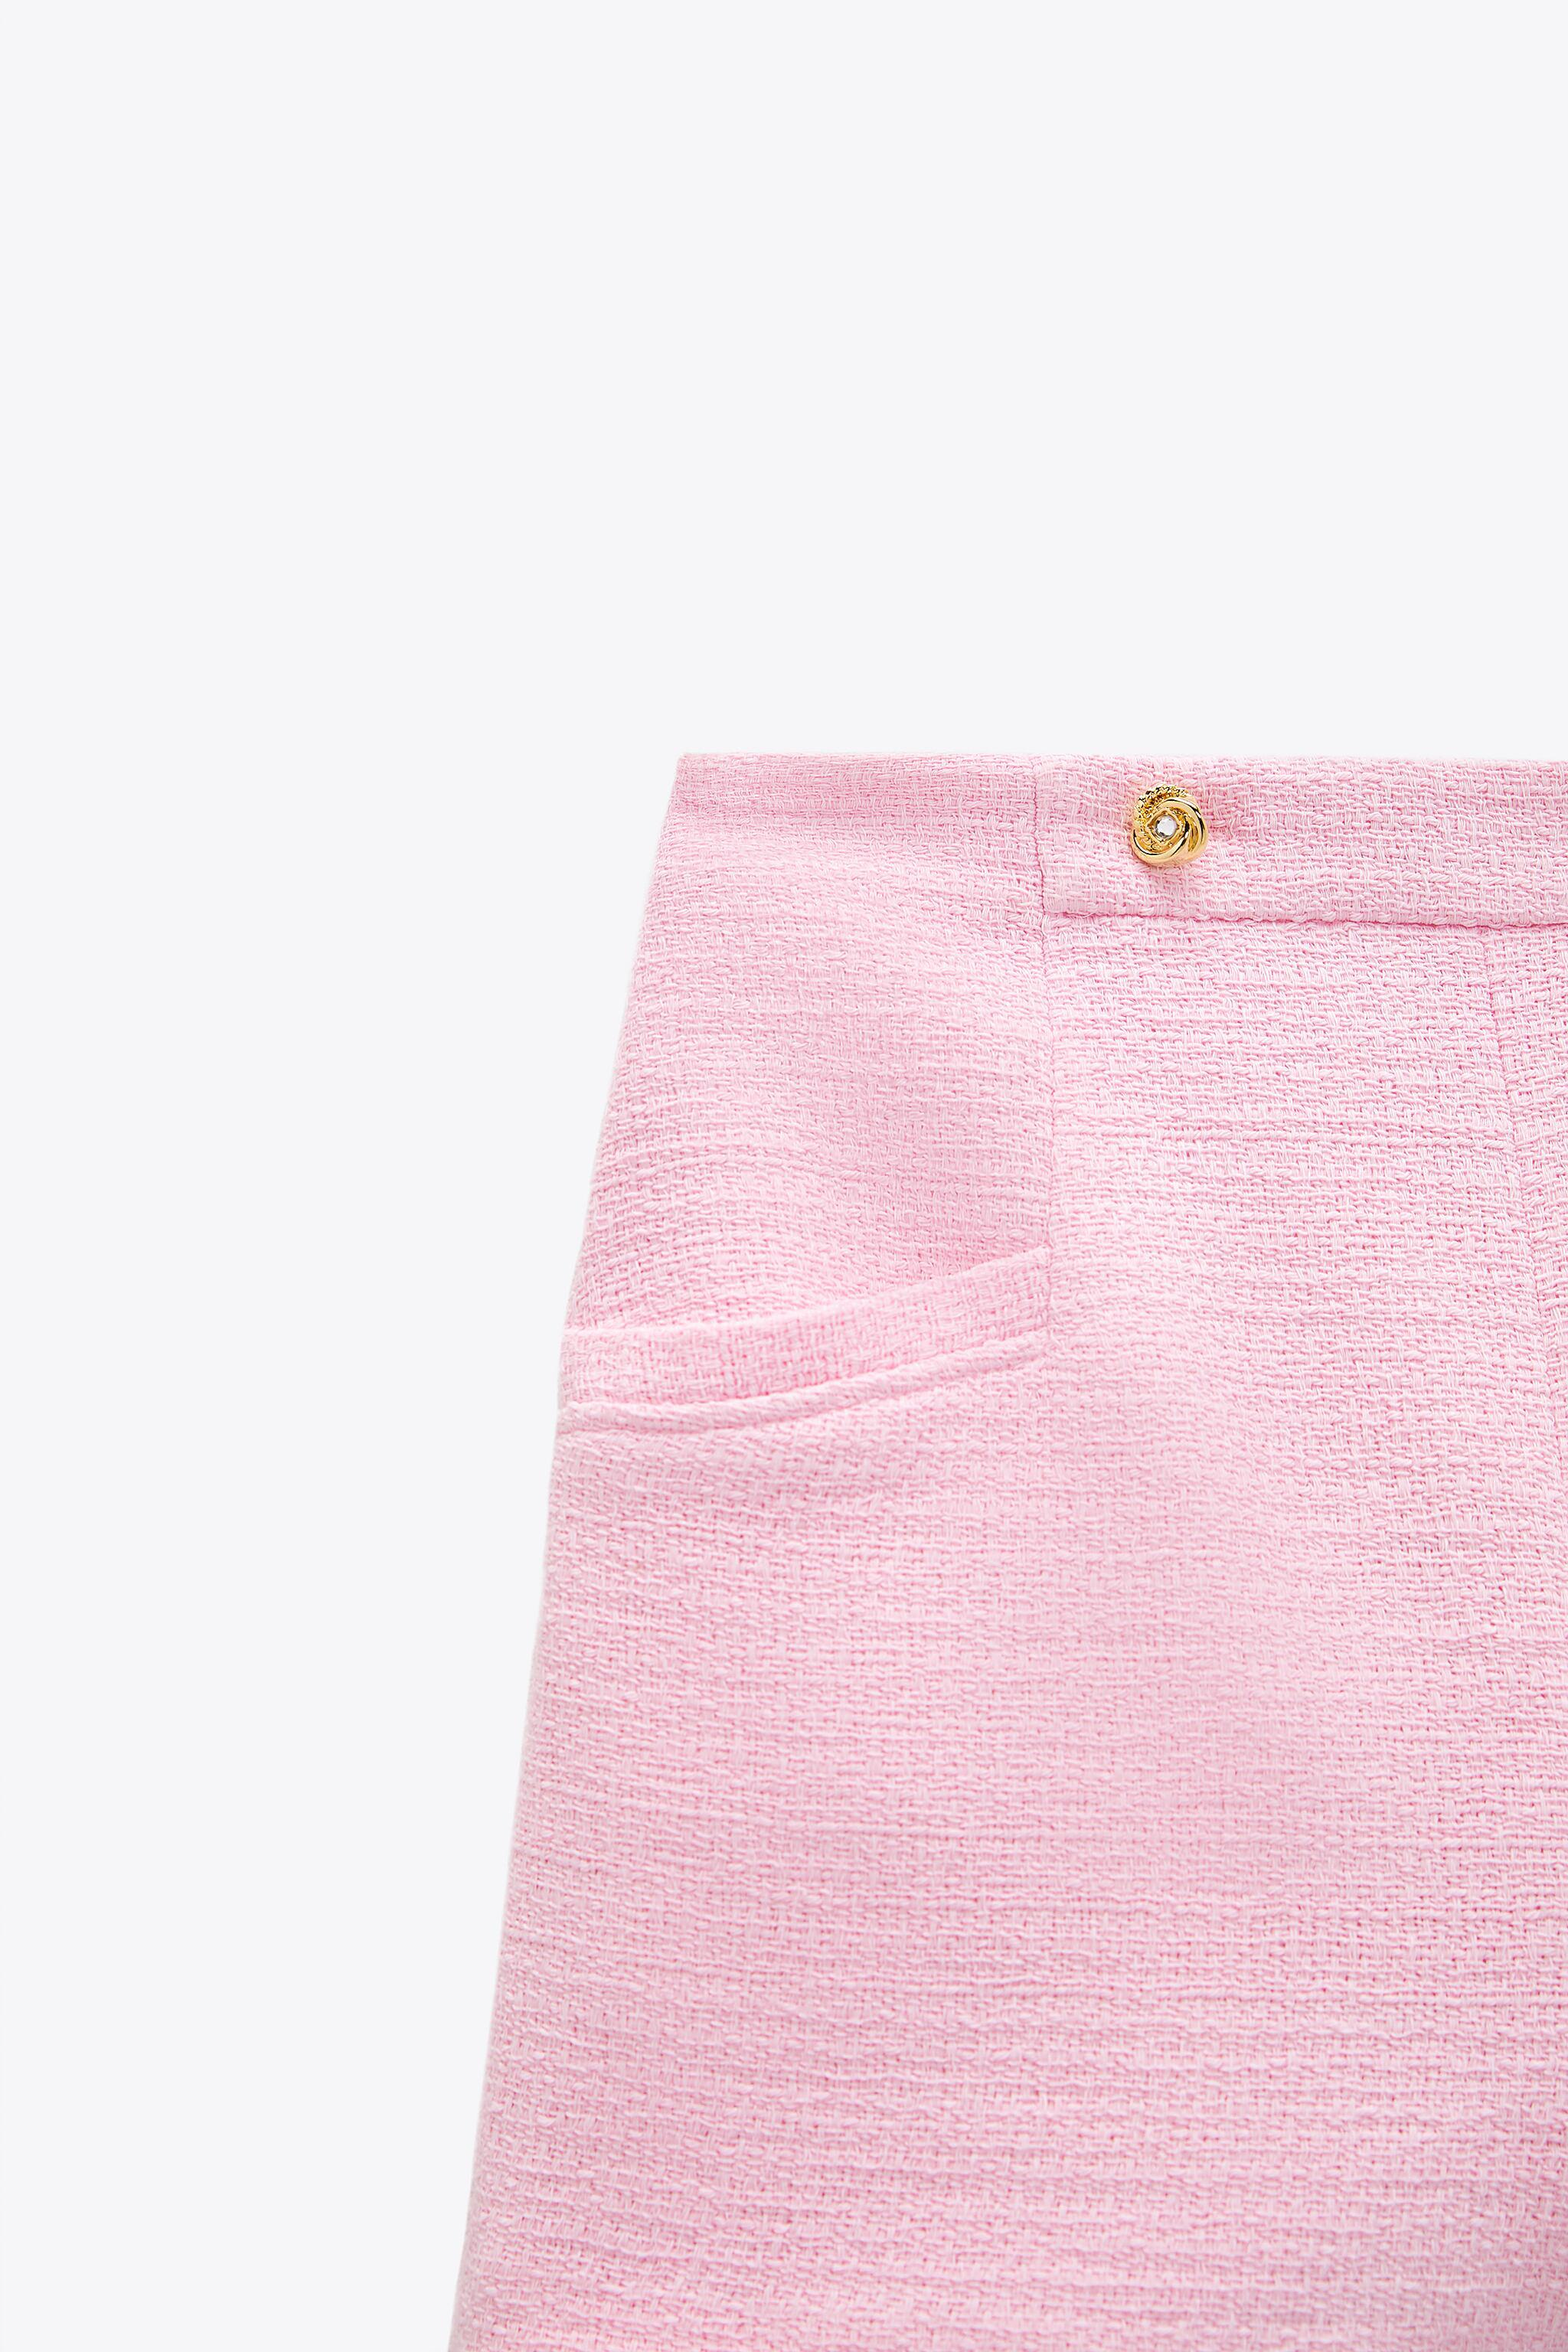 TEXTURED WEAVE SHORTS WITH BUTTONS 7